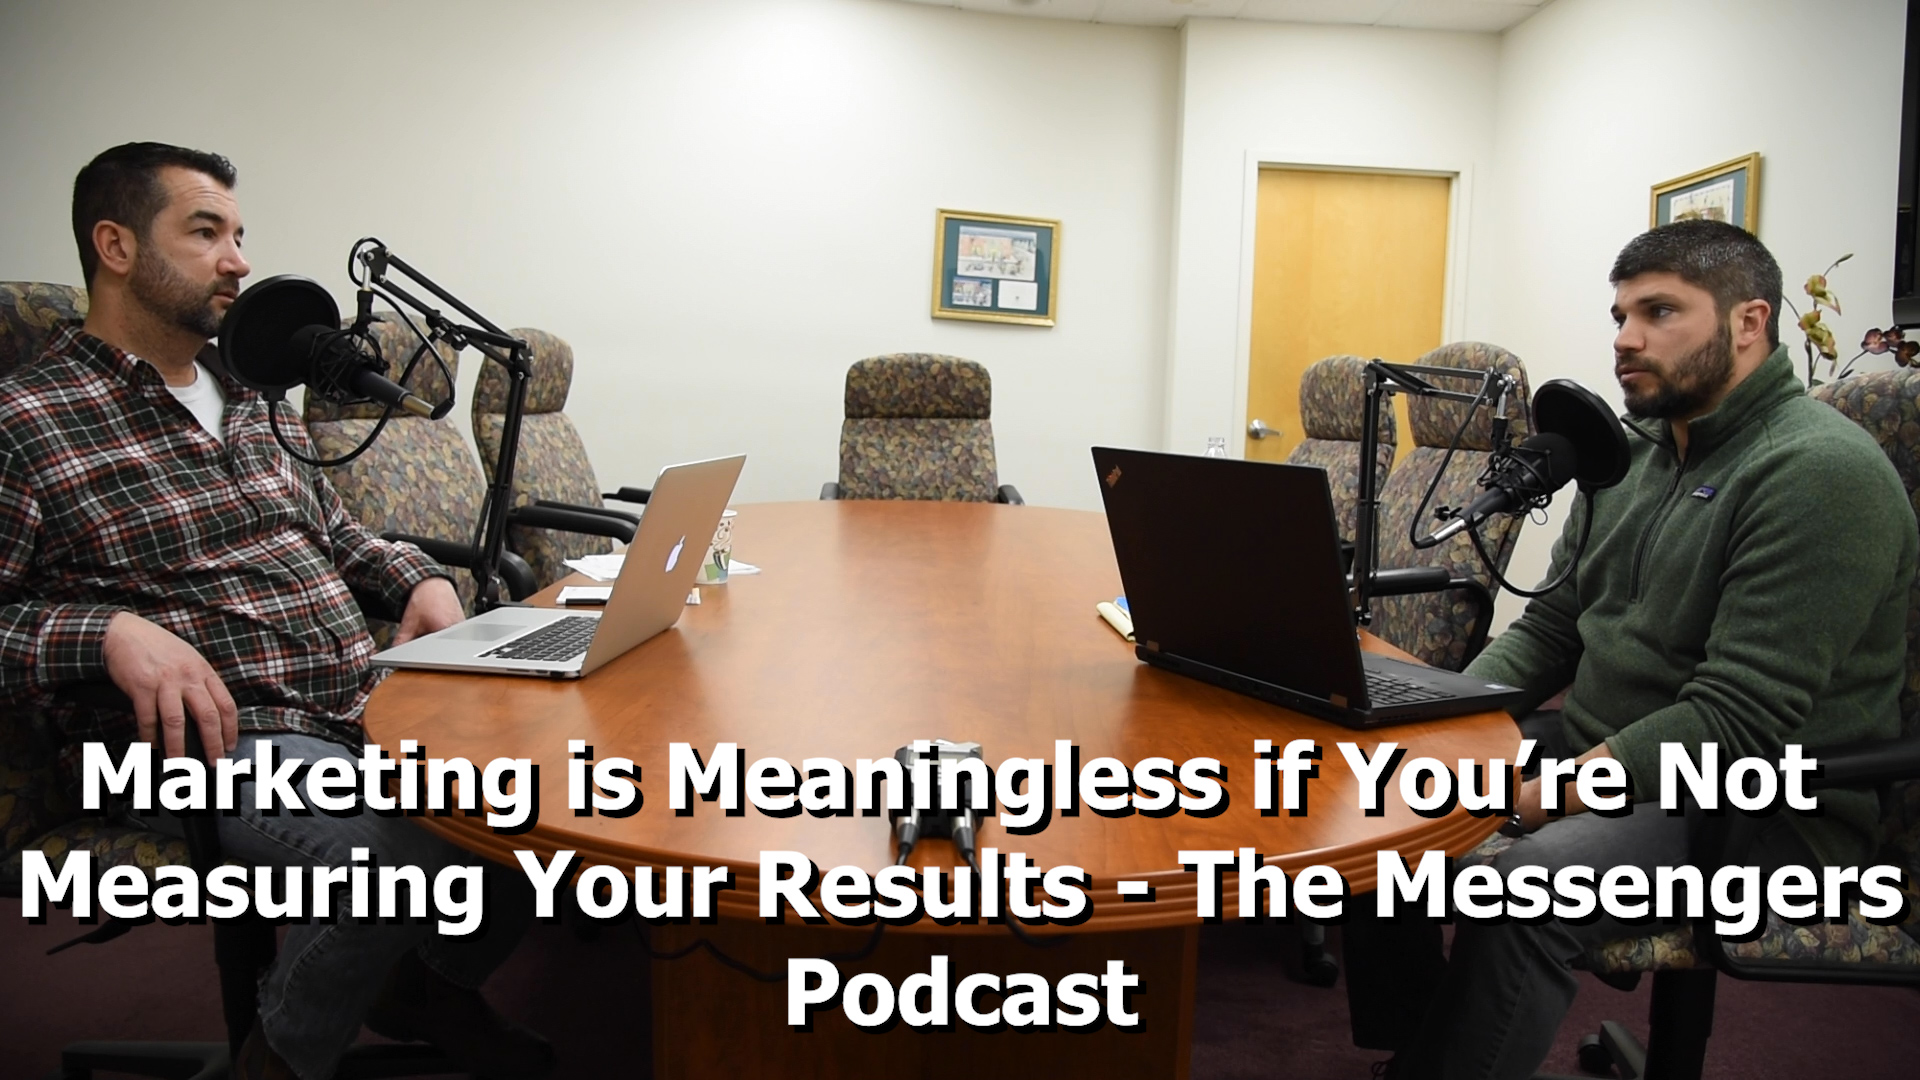 Marketing is Meaningless if You're Not Measuring Your Results - The Messengers